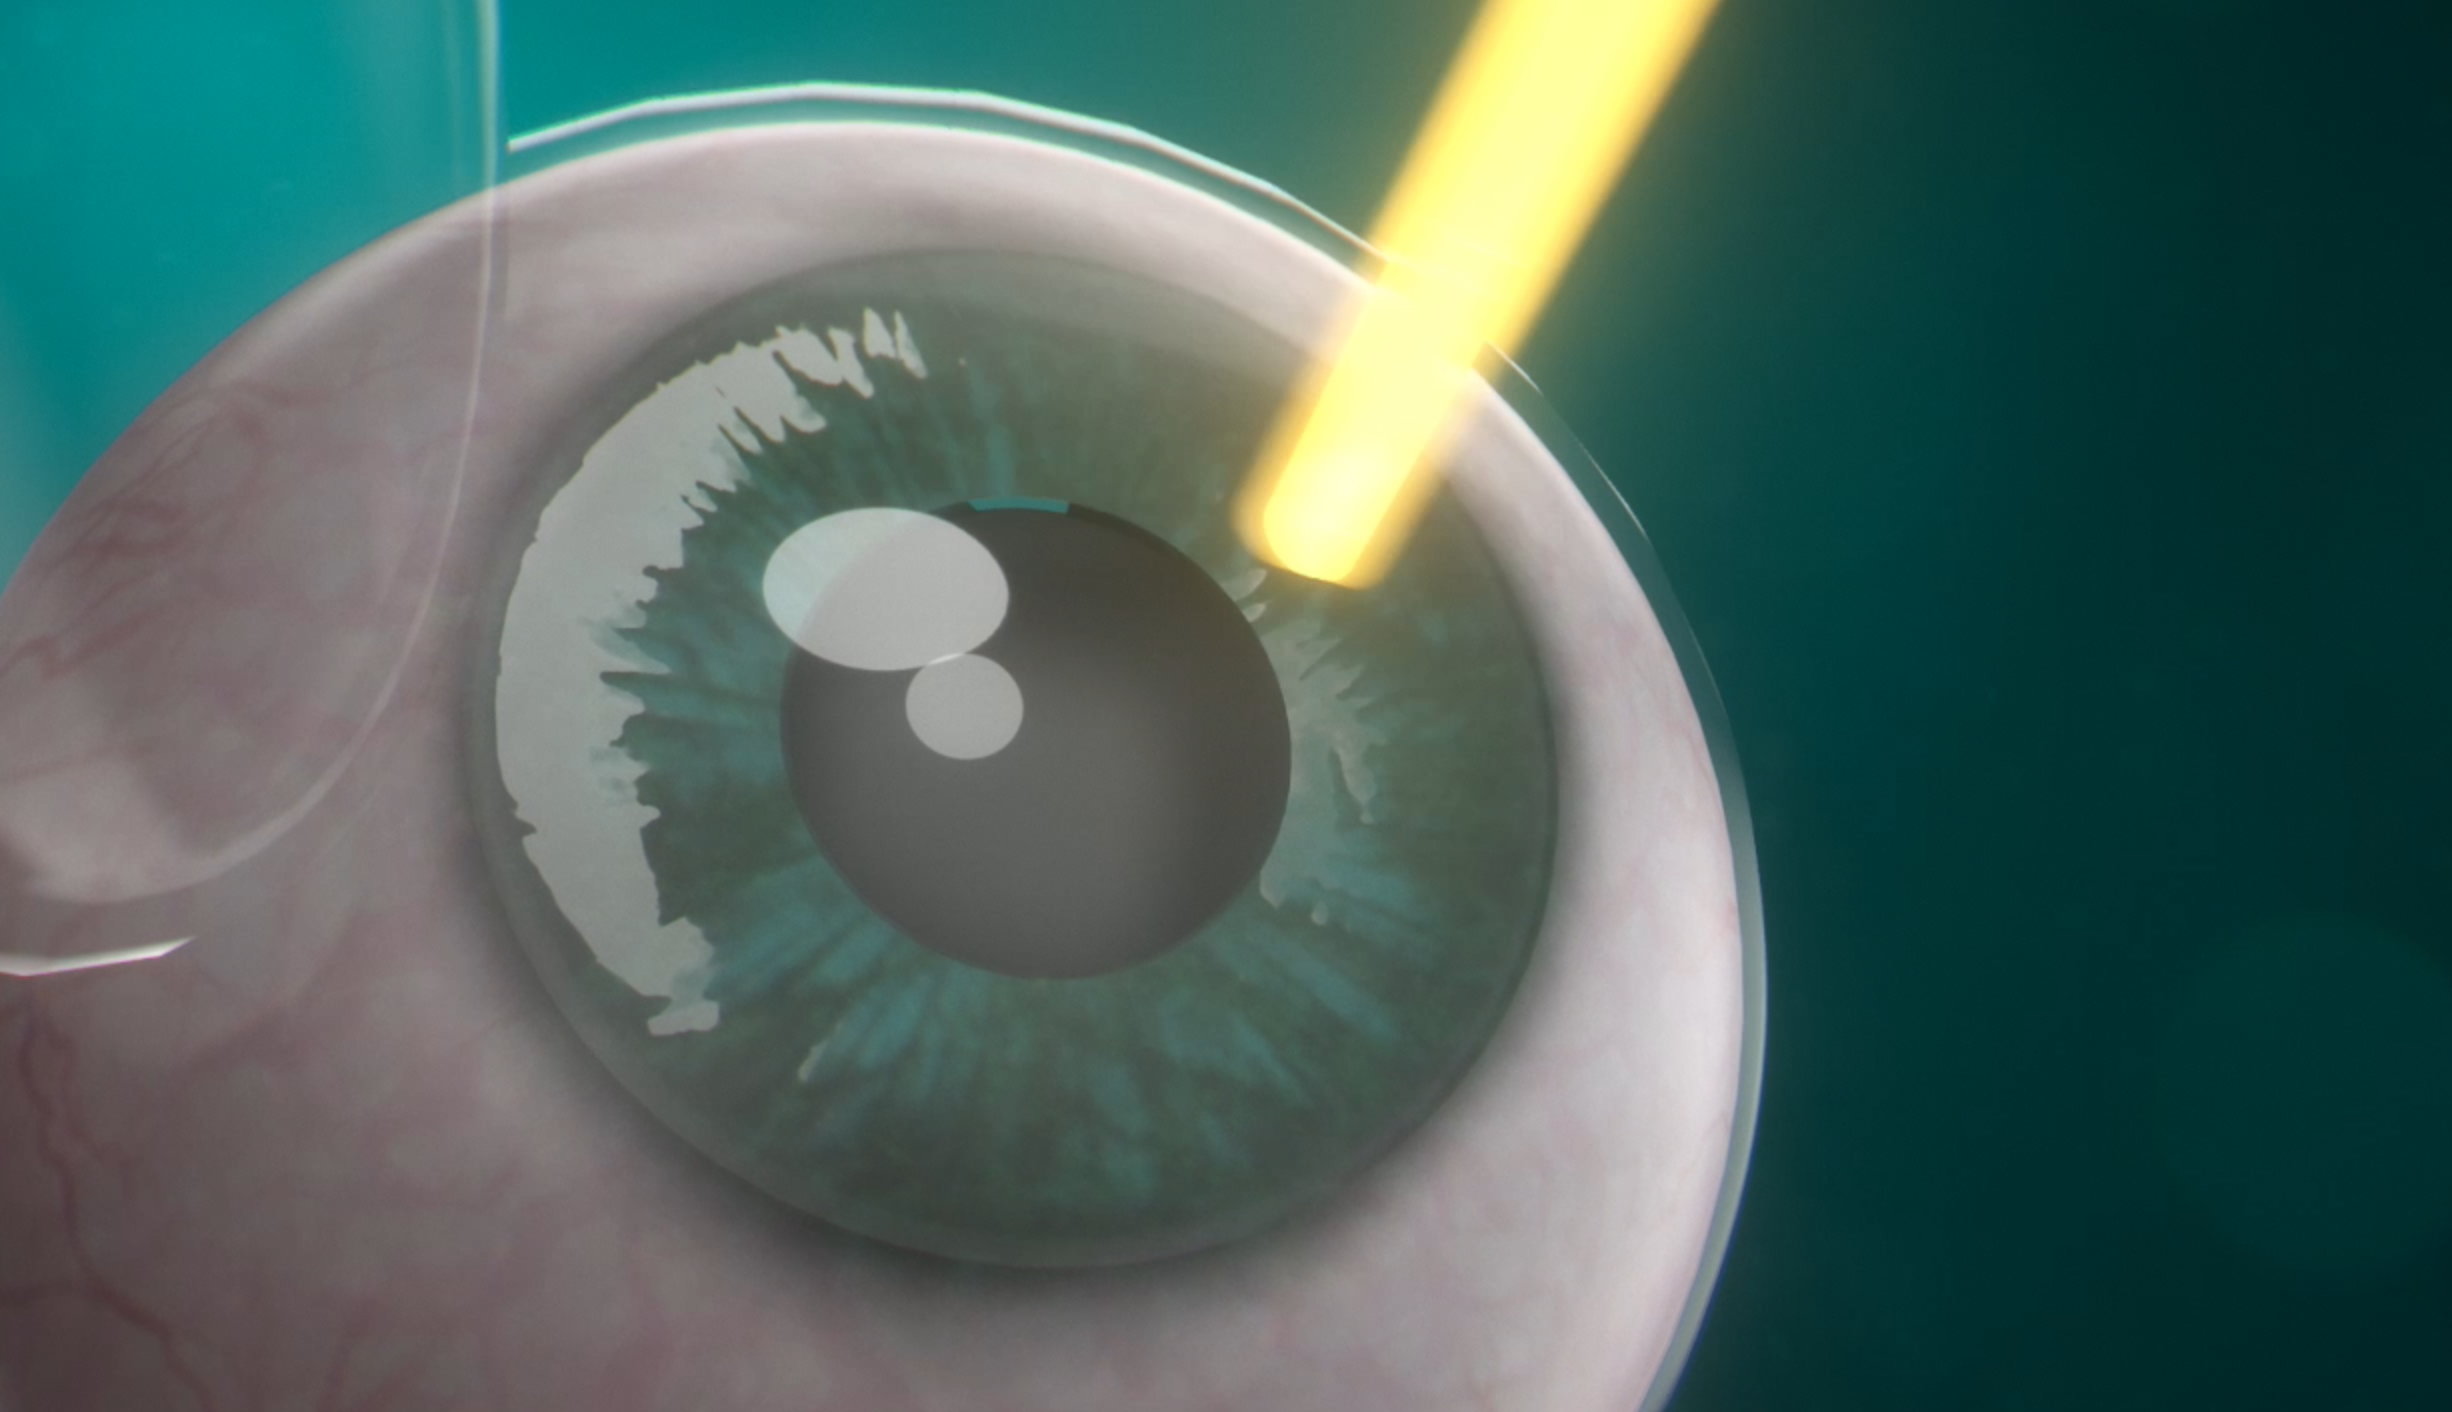 Former Fda Supervisor Calls His Approval Of Lasik A Mistake